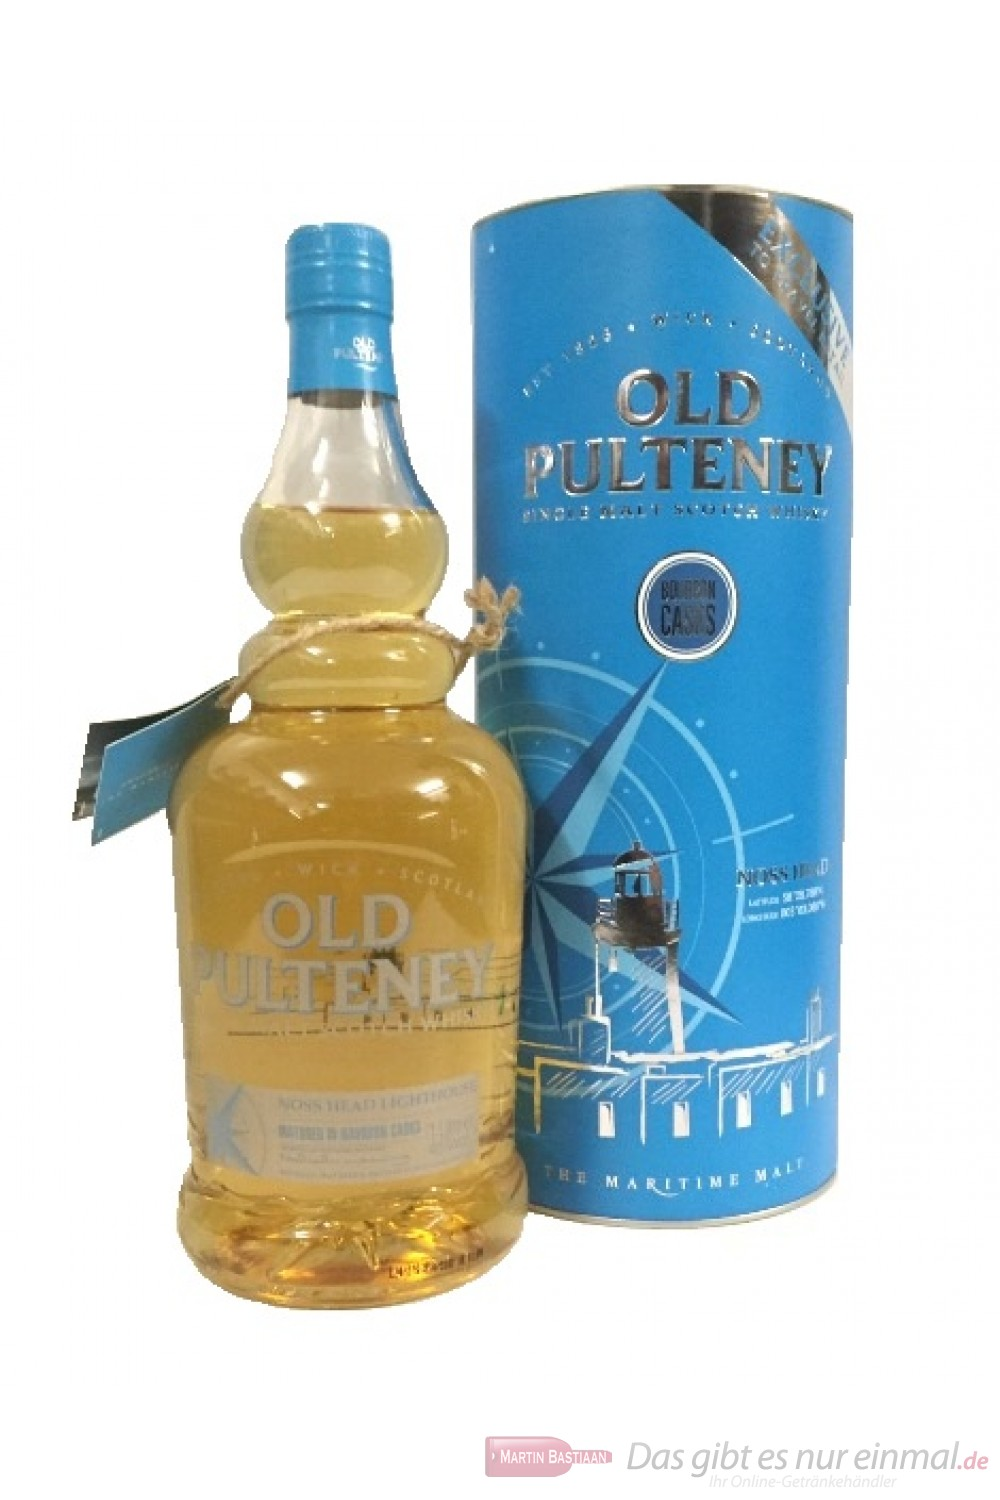 Old Pulteney Bourbon Casks